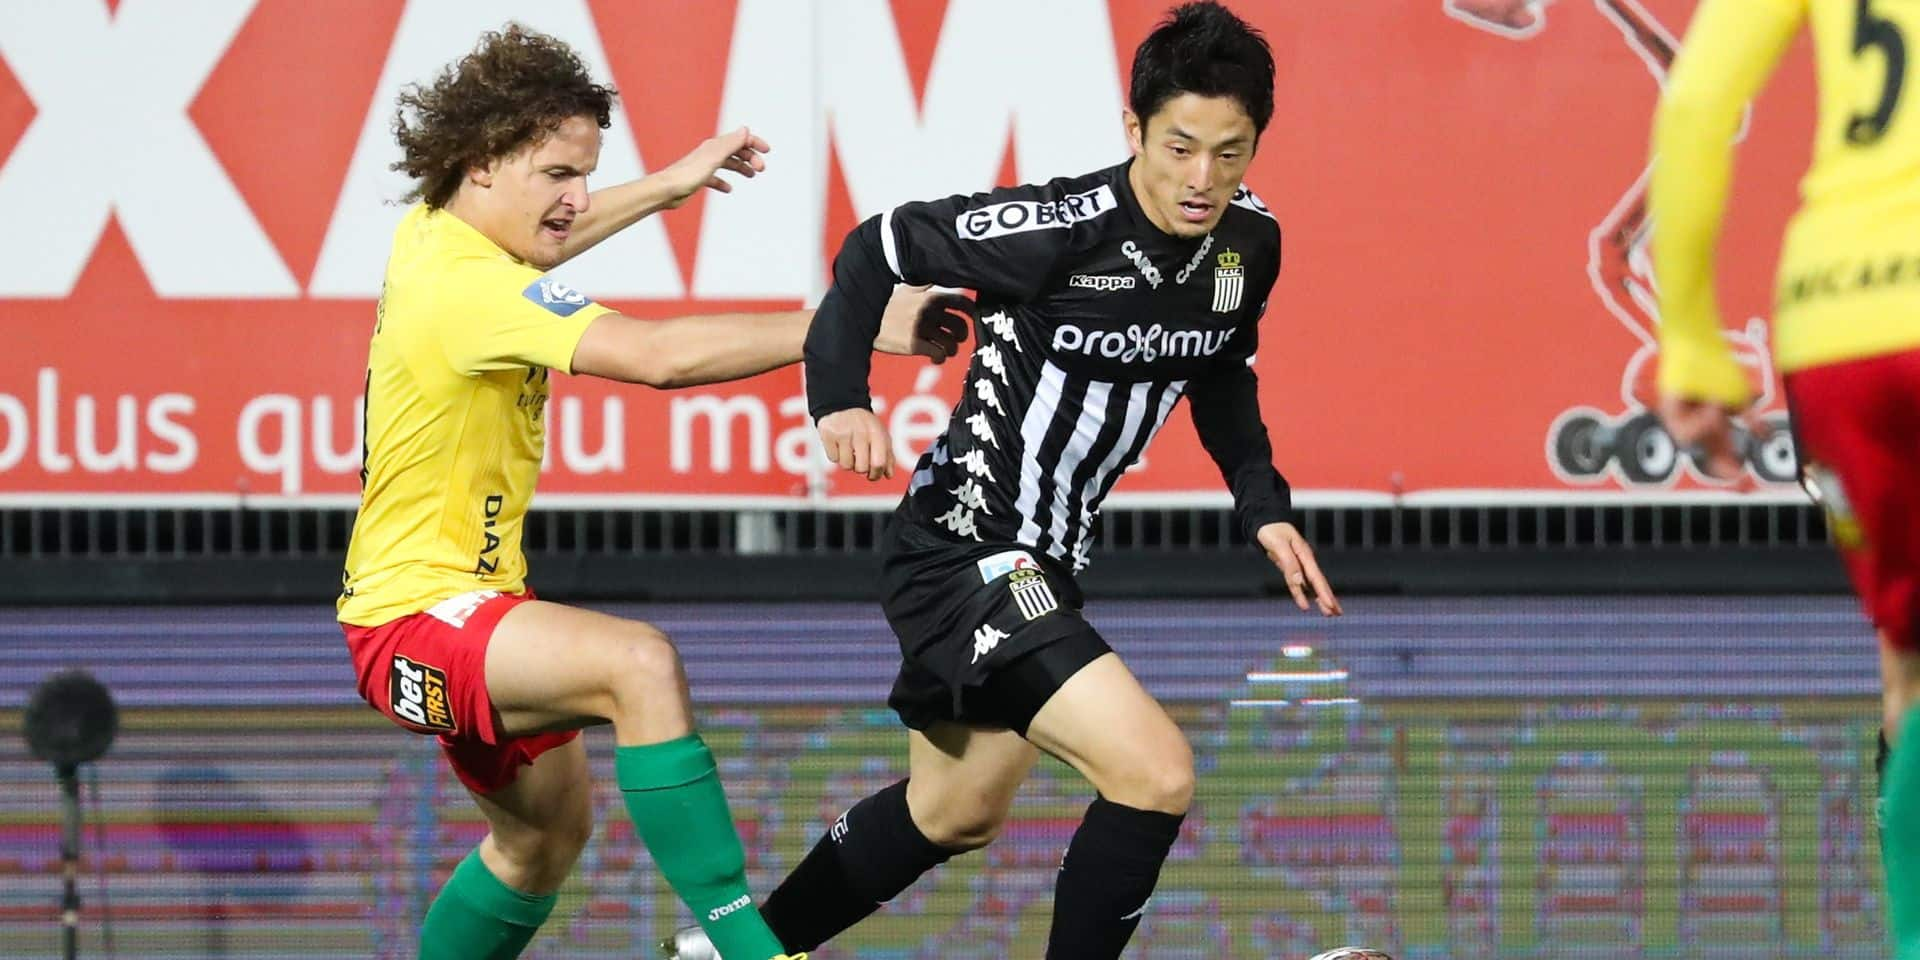 Oostende's Wout Faes and Charleroi's Ryota Morioka fight for the ball during a soccer match between Sporting Charleroi and KV Oostende, Saturday 09 February 2019 in Charleroi, on the 25th day of the 'Jupiler Pro League' Belgian soccer championship season 2018-2019. BELGA PHOTO VIRGINIE LEFOUR